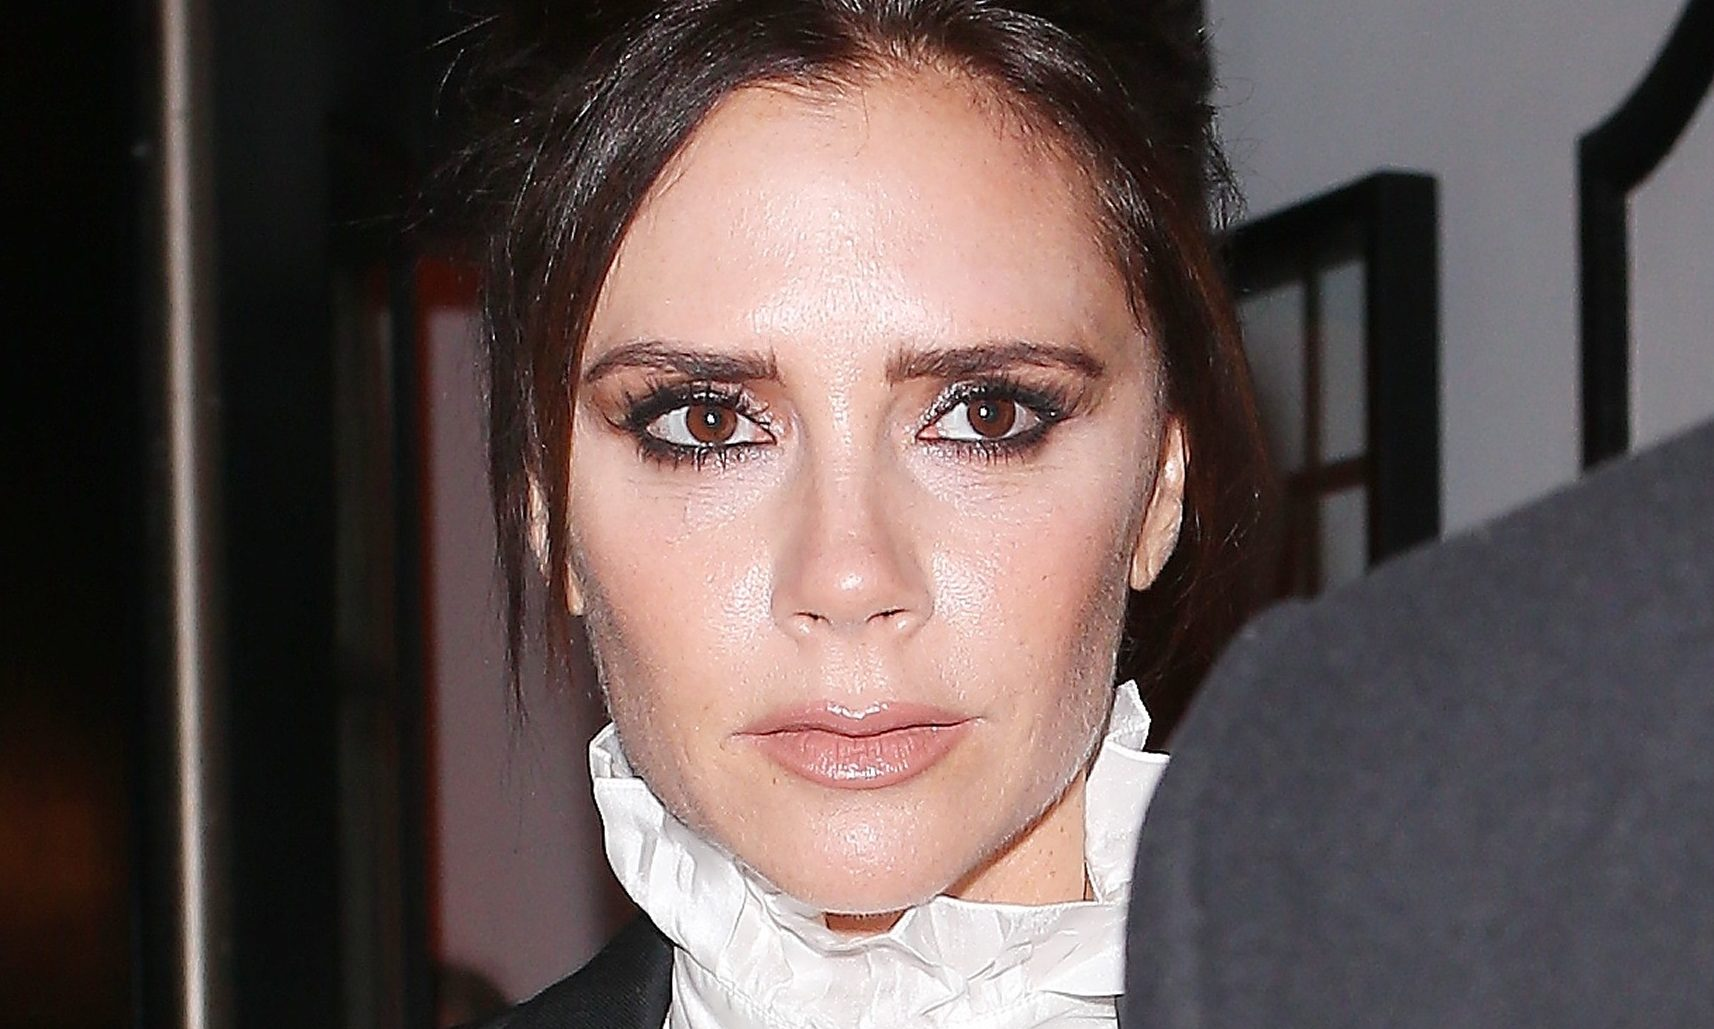 Victoria Beckham proves she CAN let her hair down with intimate NYE snaps